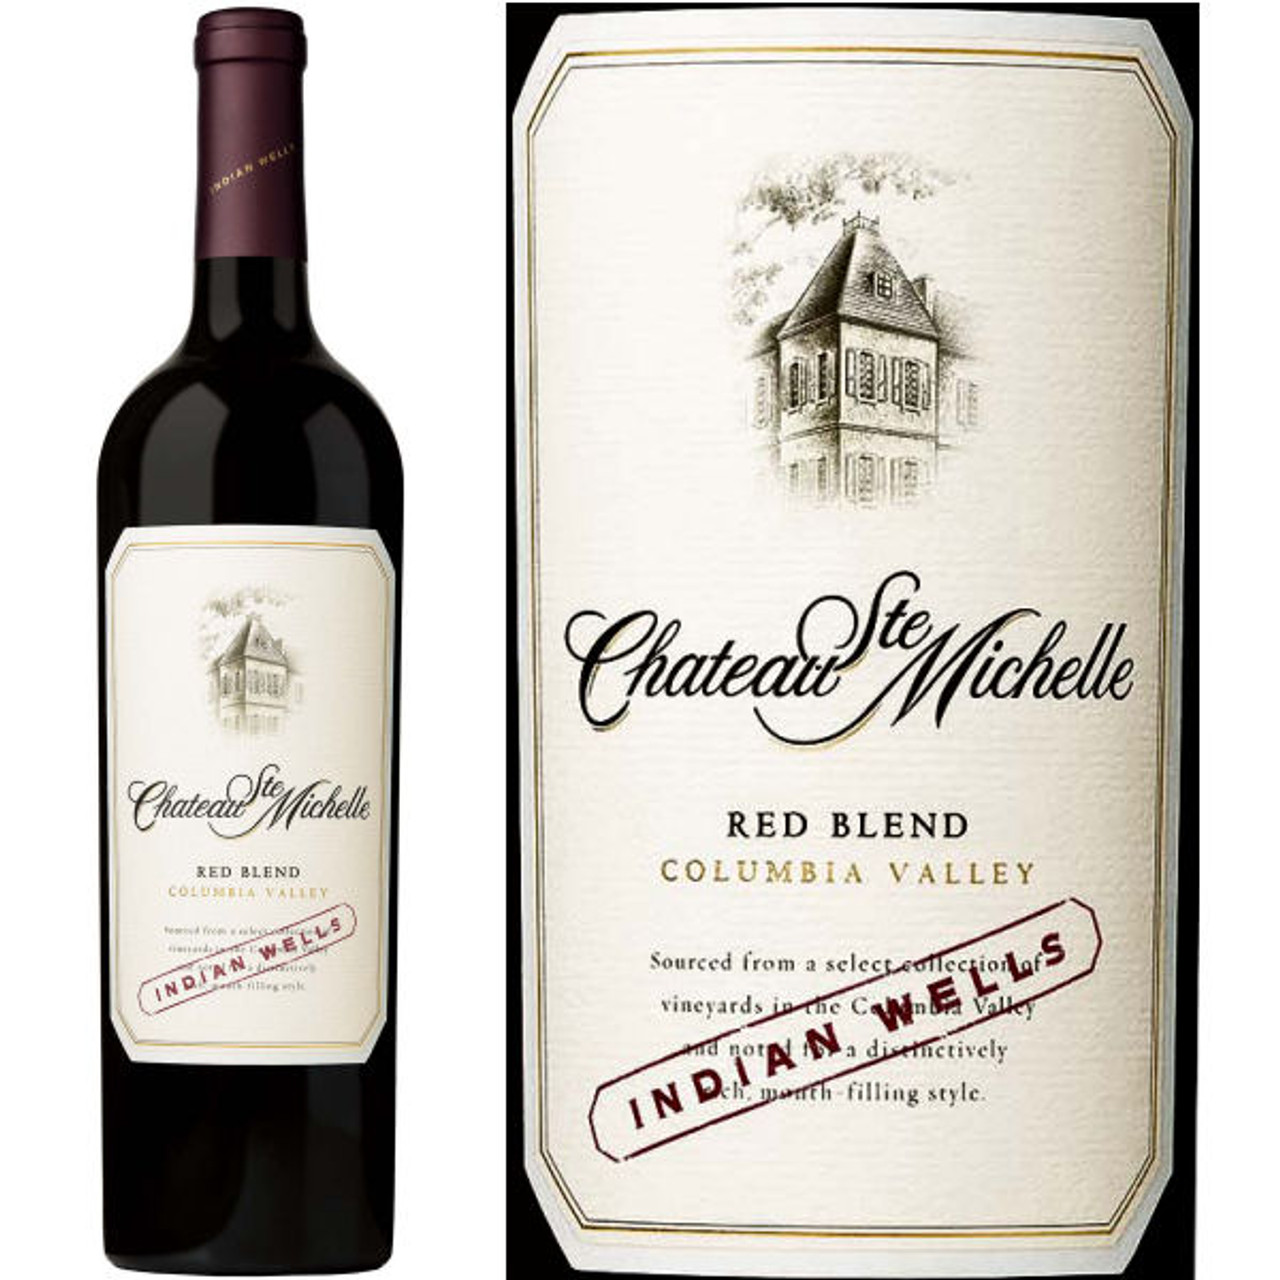 Chateau Ste. Michelle Indian Wells Columbia Valley Red Blend